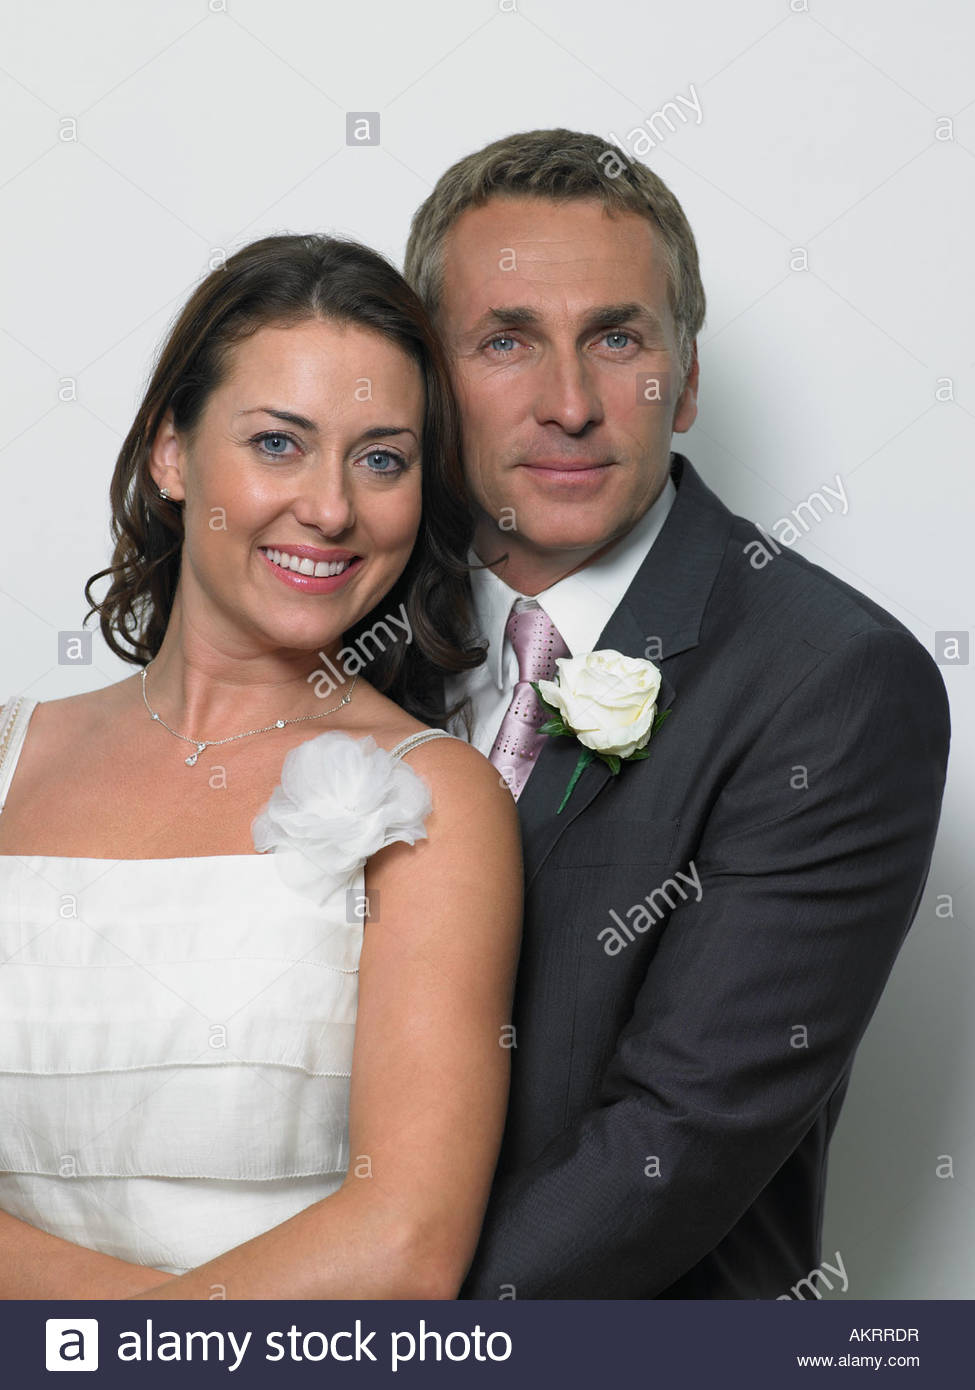 A portrait of the bride and groom - Stock Image